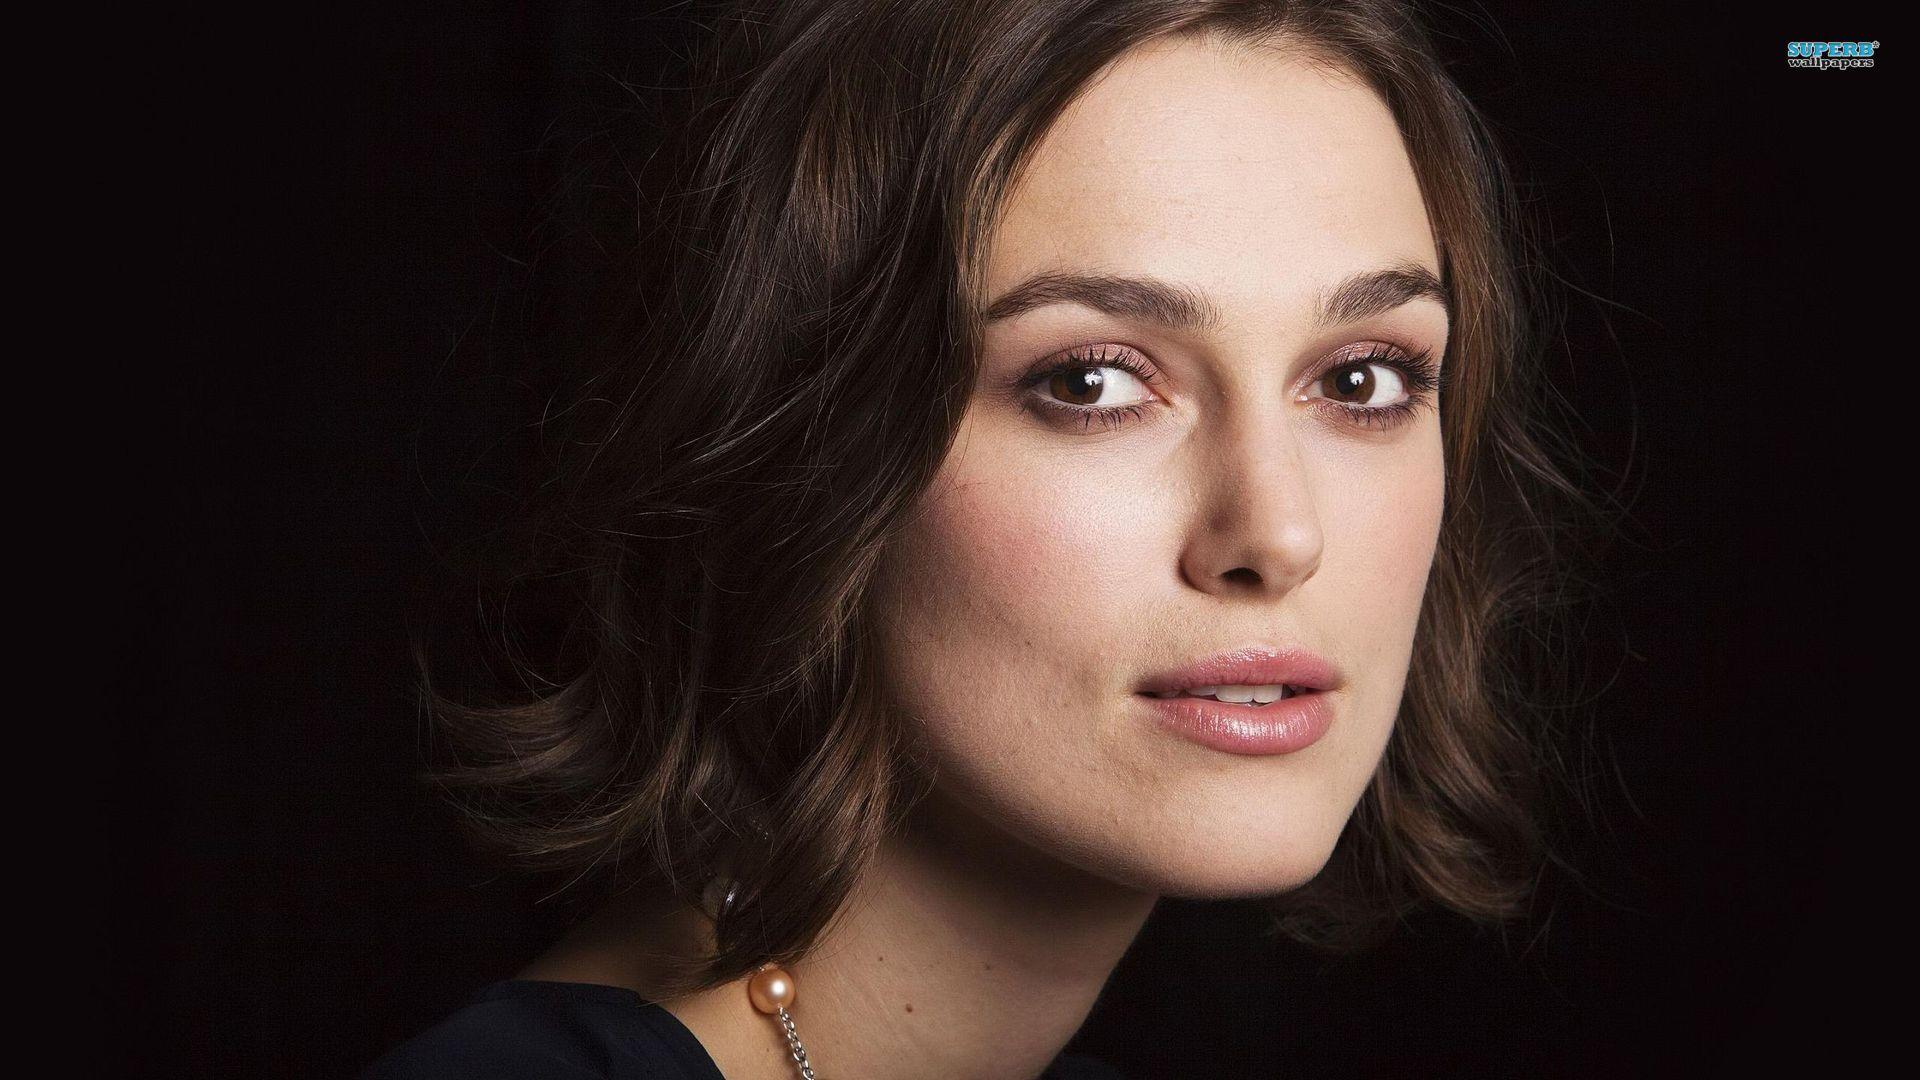 International Furniture Kitchener Kiera Knightley Wallpapers Wallpaper Cave 28 Images